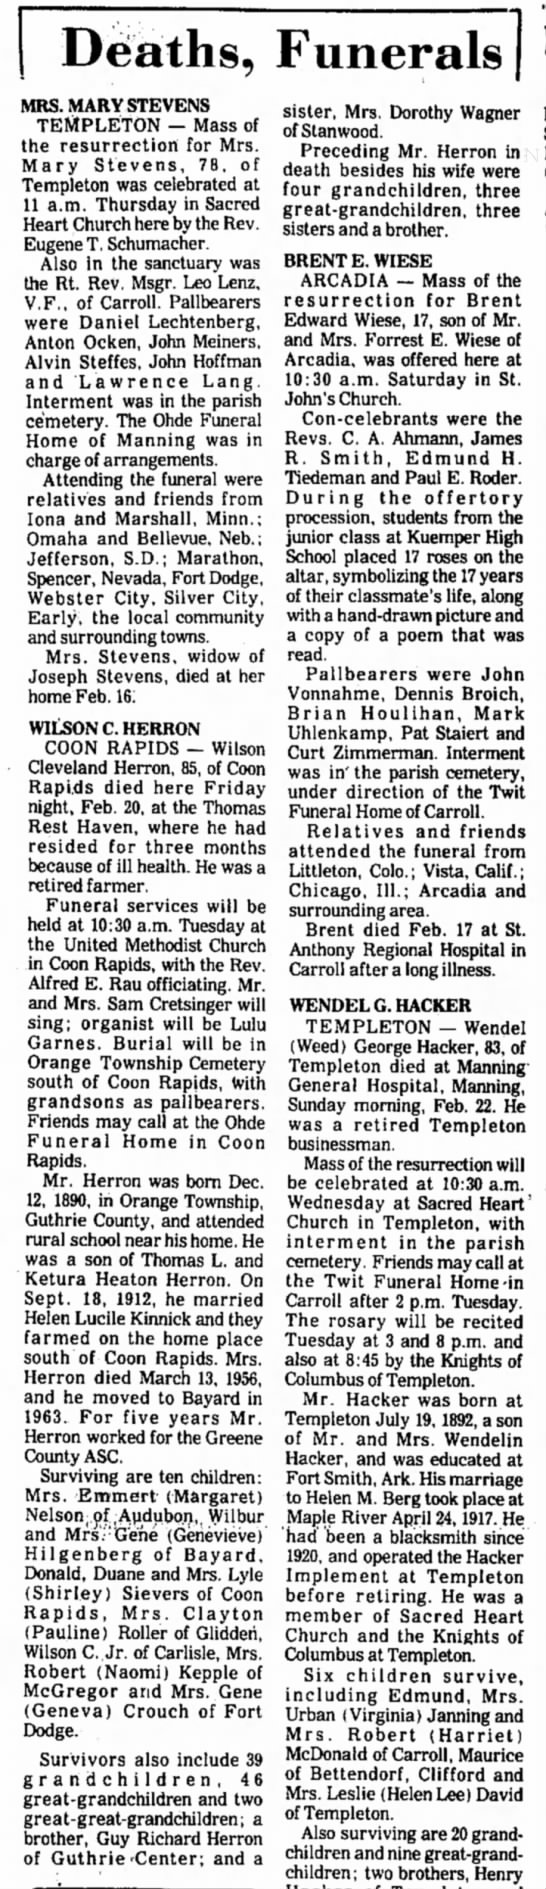 Obit in Carrol Daily Times Herald, IA on Wilson C Herron of Coon Rapids 23 Feb 1976